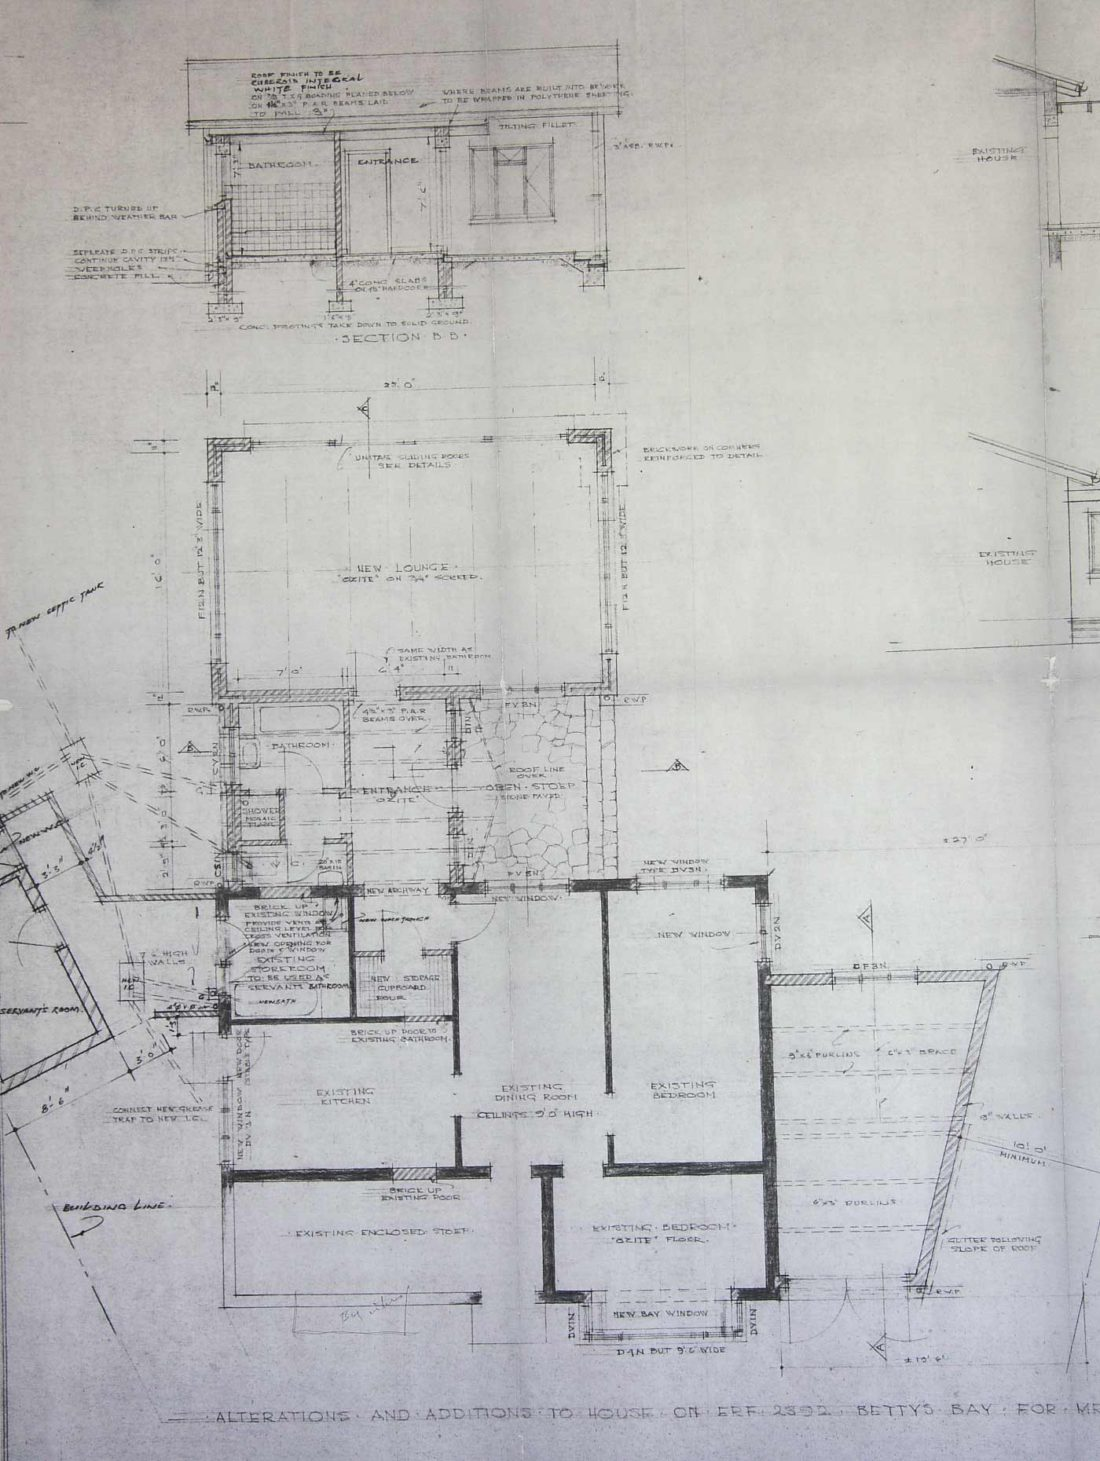 1970 Additions by Day and De Wet architects to the 1943 structure